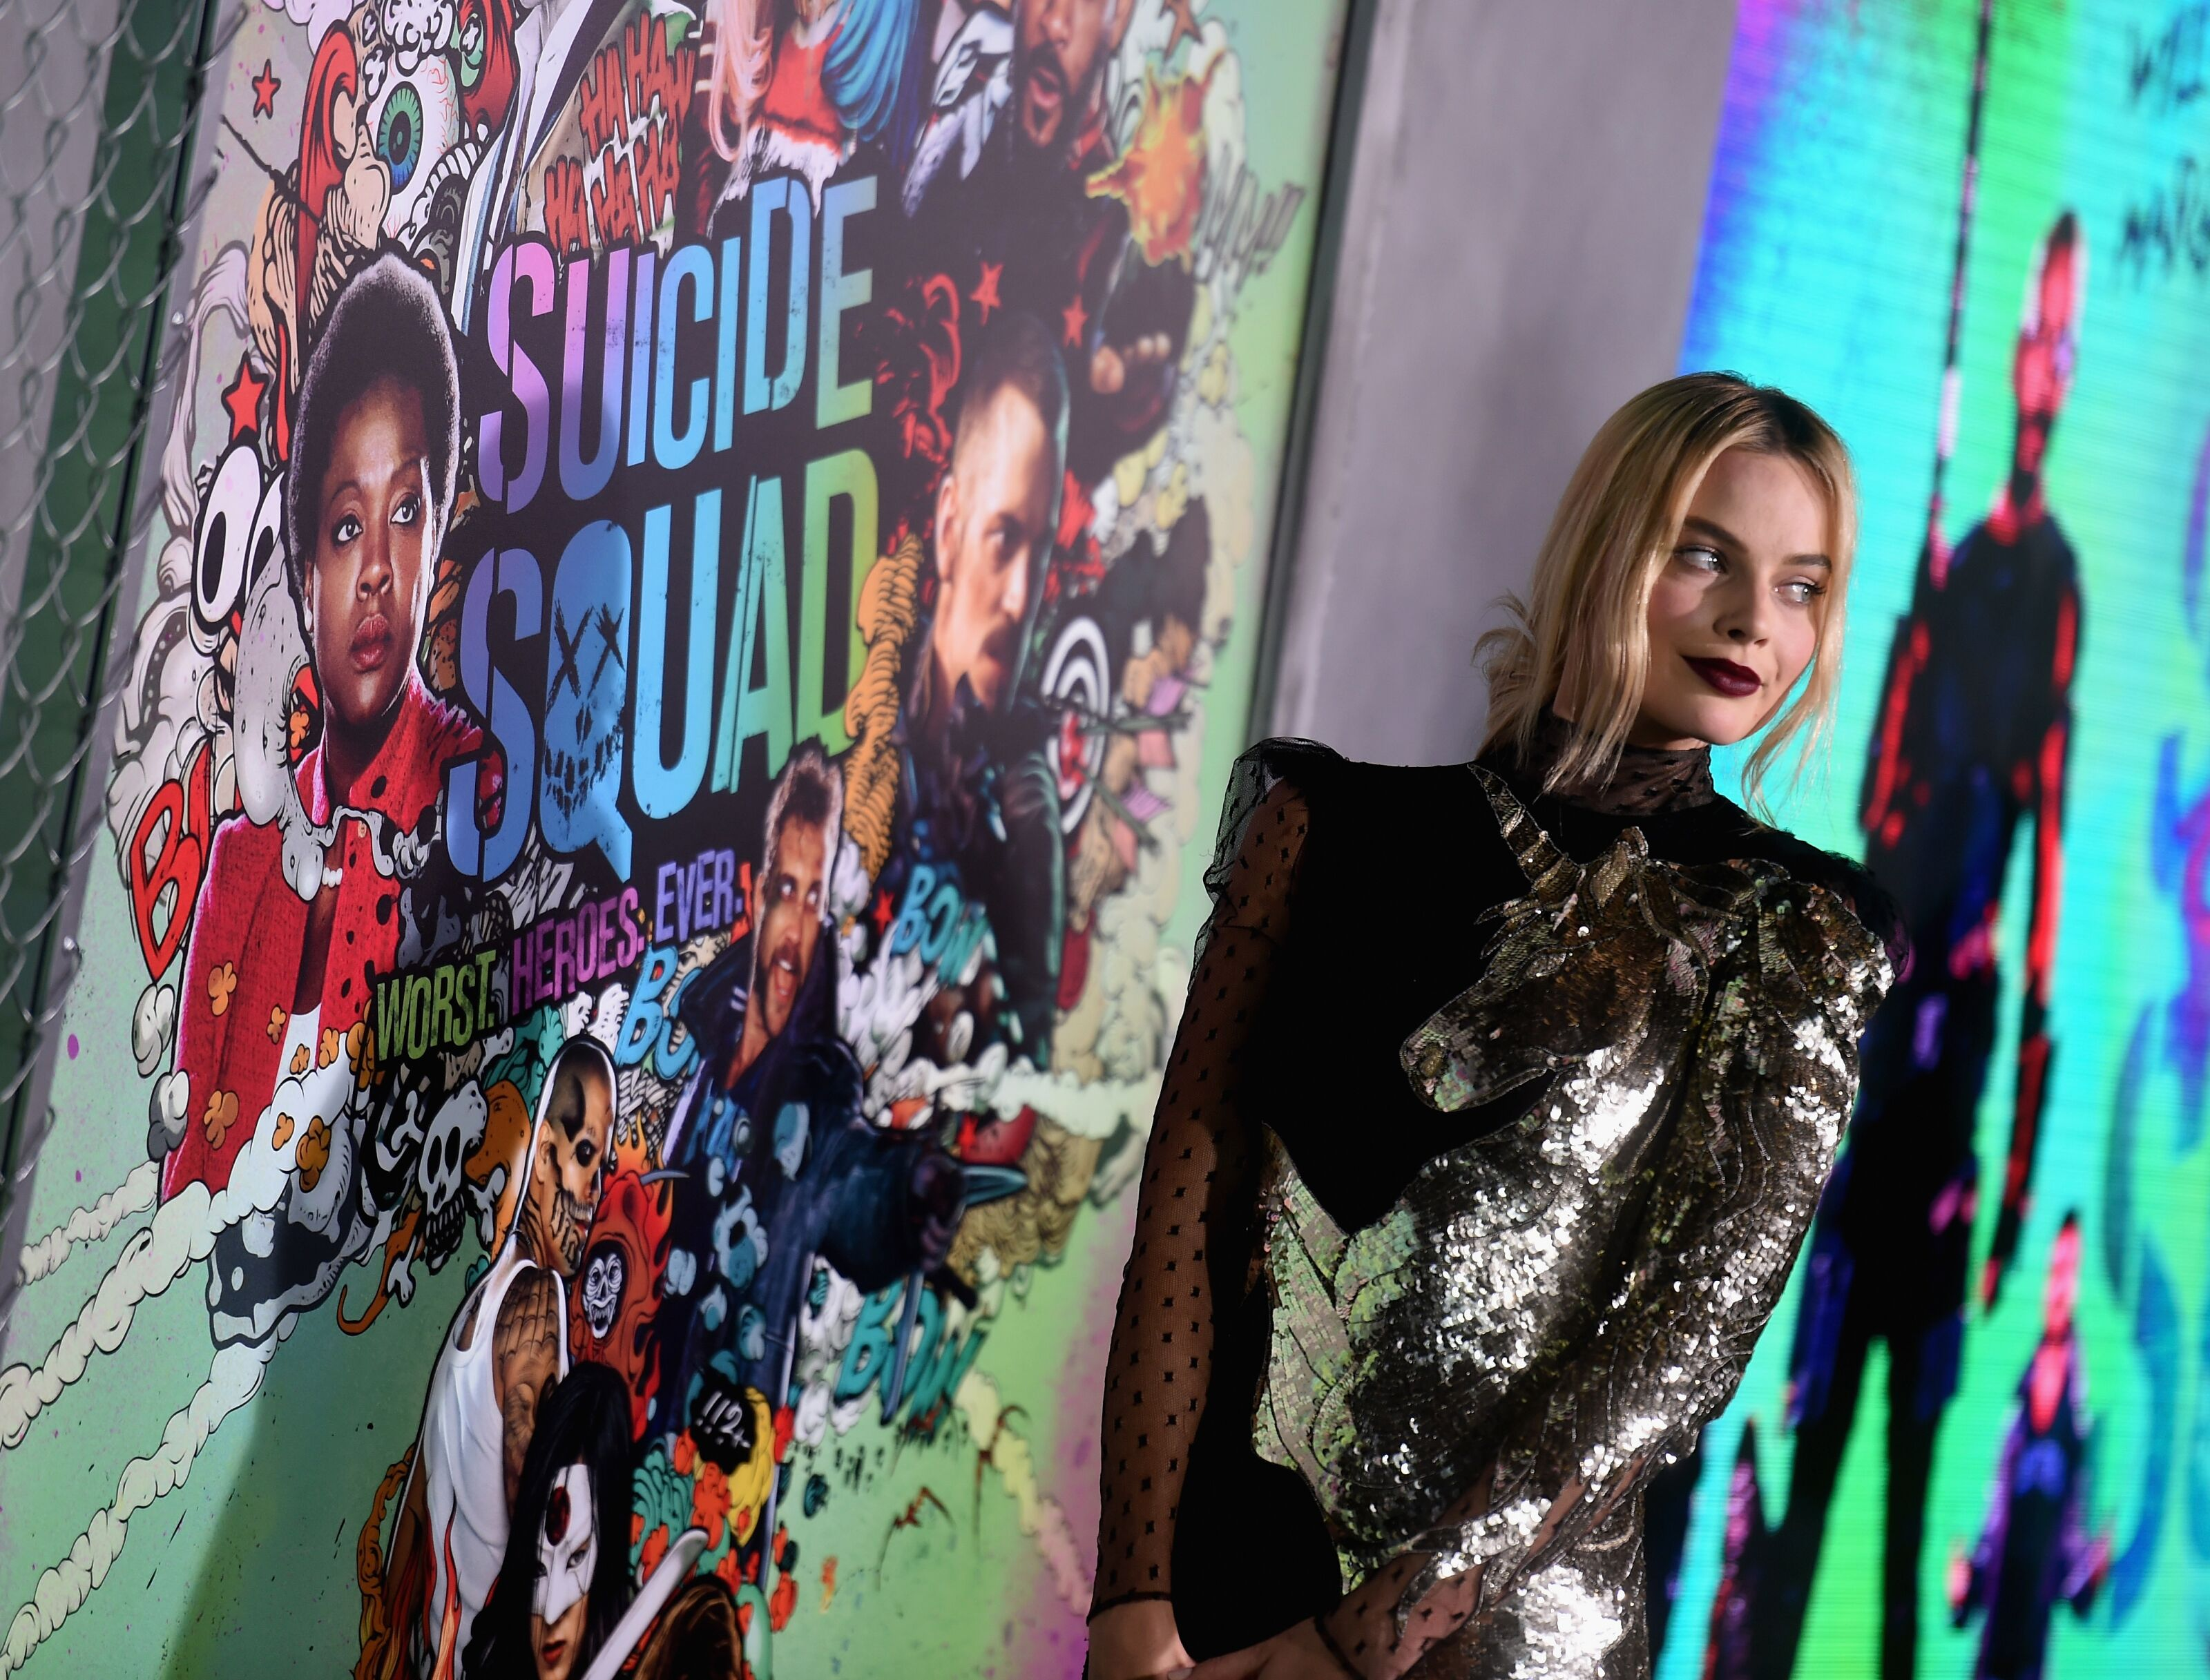 James Gunn's The Suicide Squad will use more practical effects